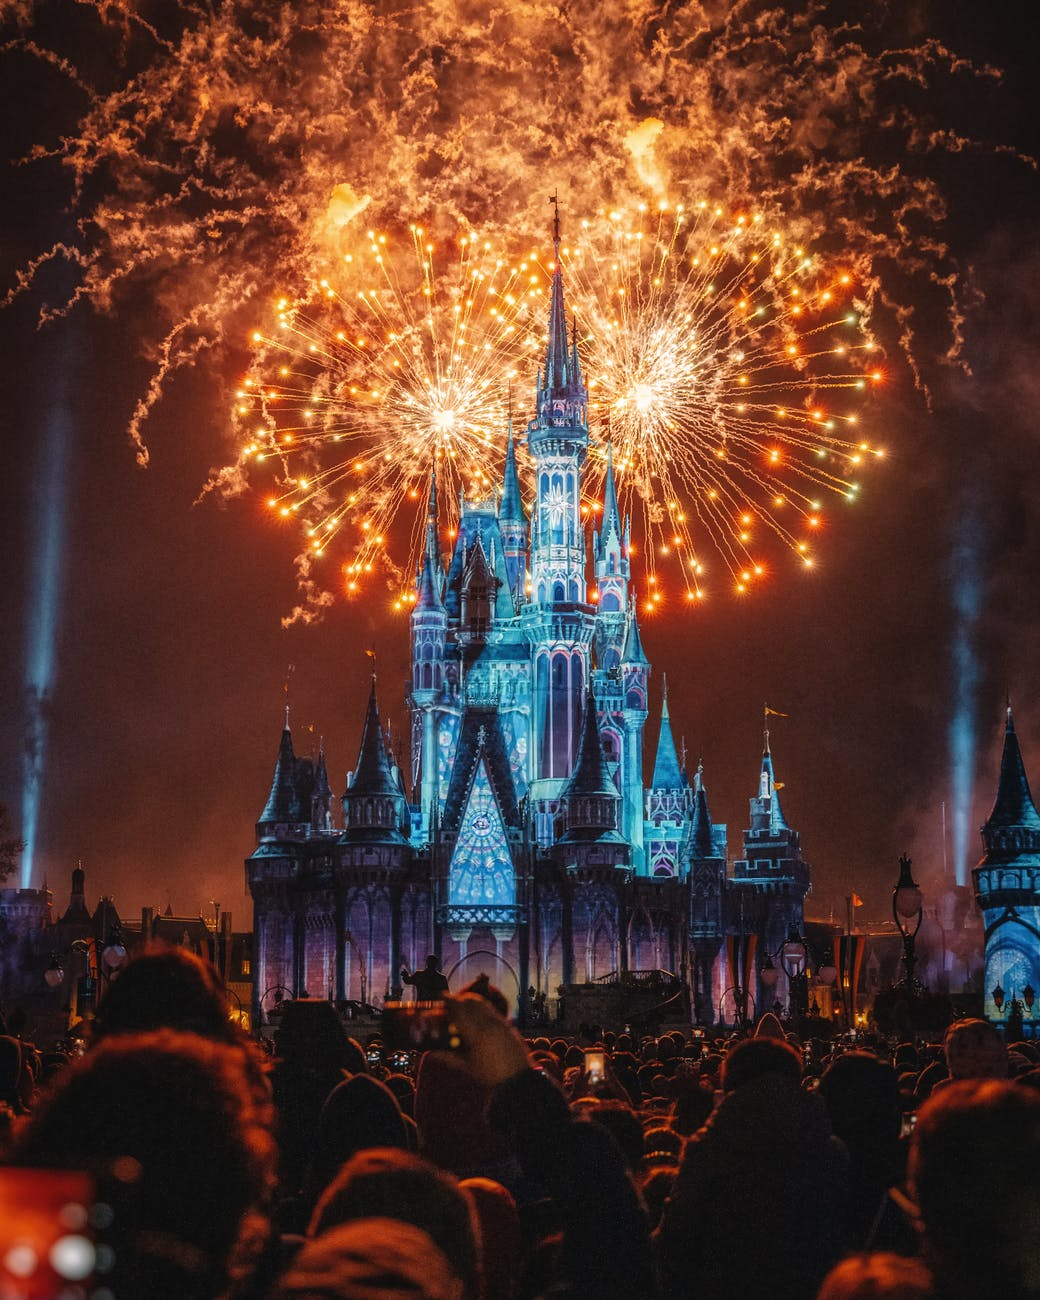 photo of fireworks display during evening